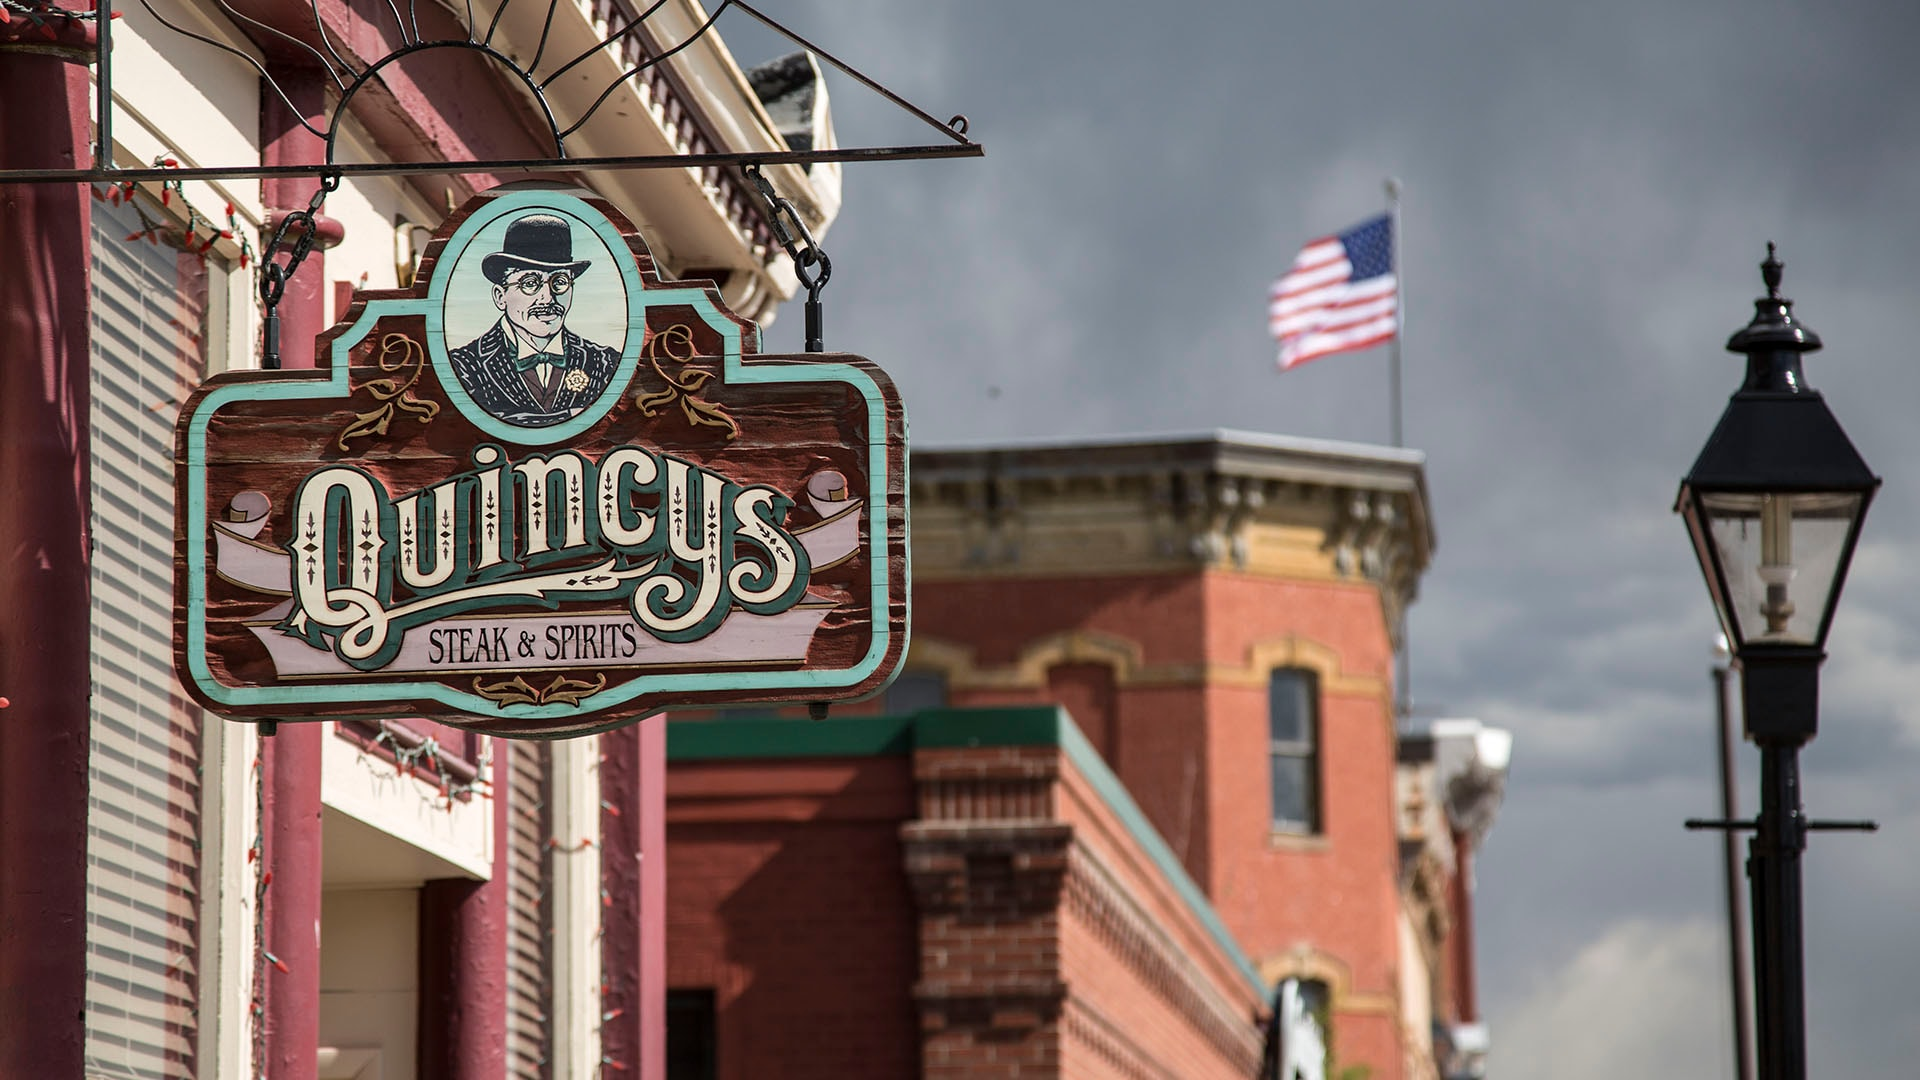 Quincys Steak & Spirits in Colorado